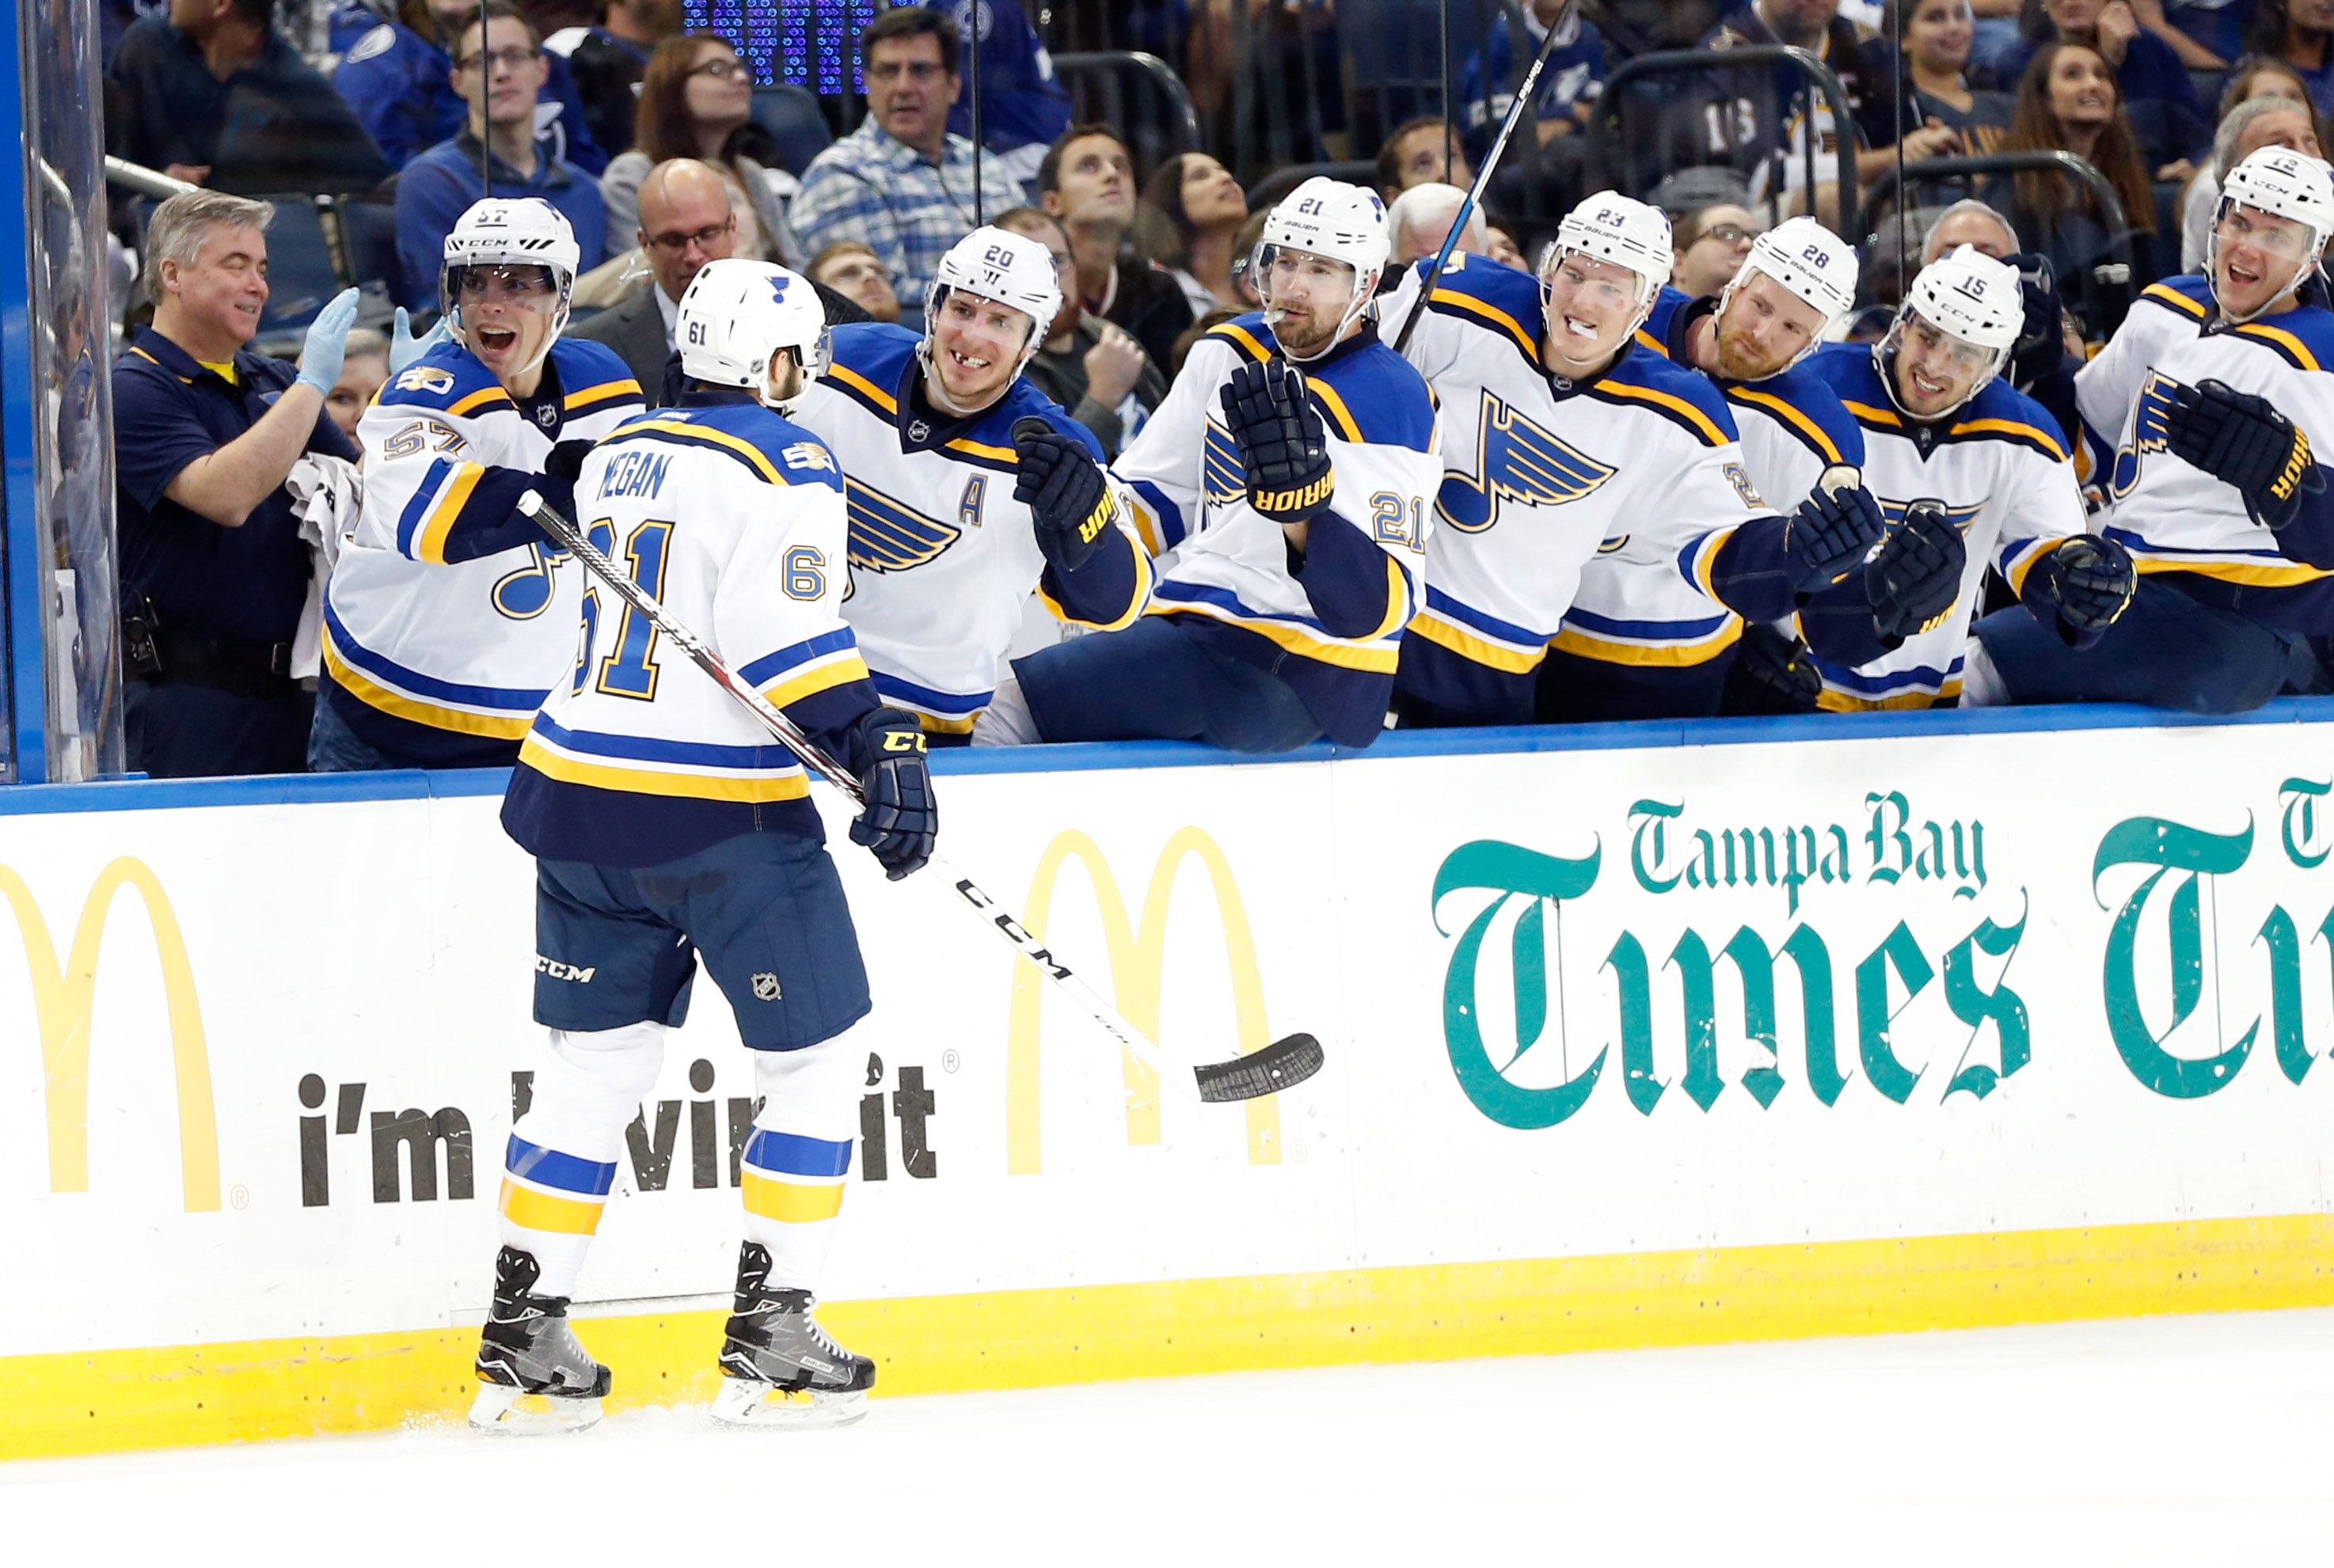 9776211-nhl-st.-louis-blues-at-tampa-bay-lightning